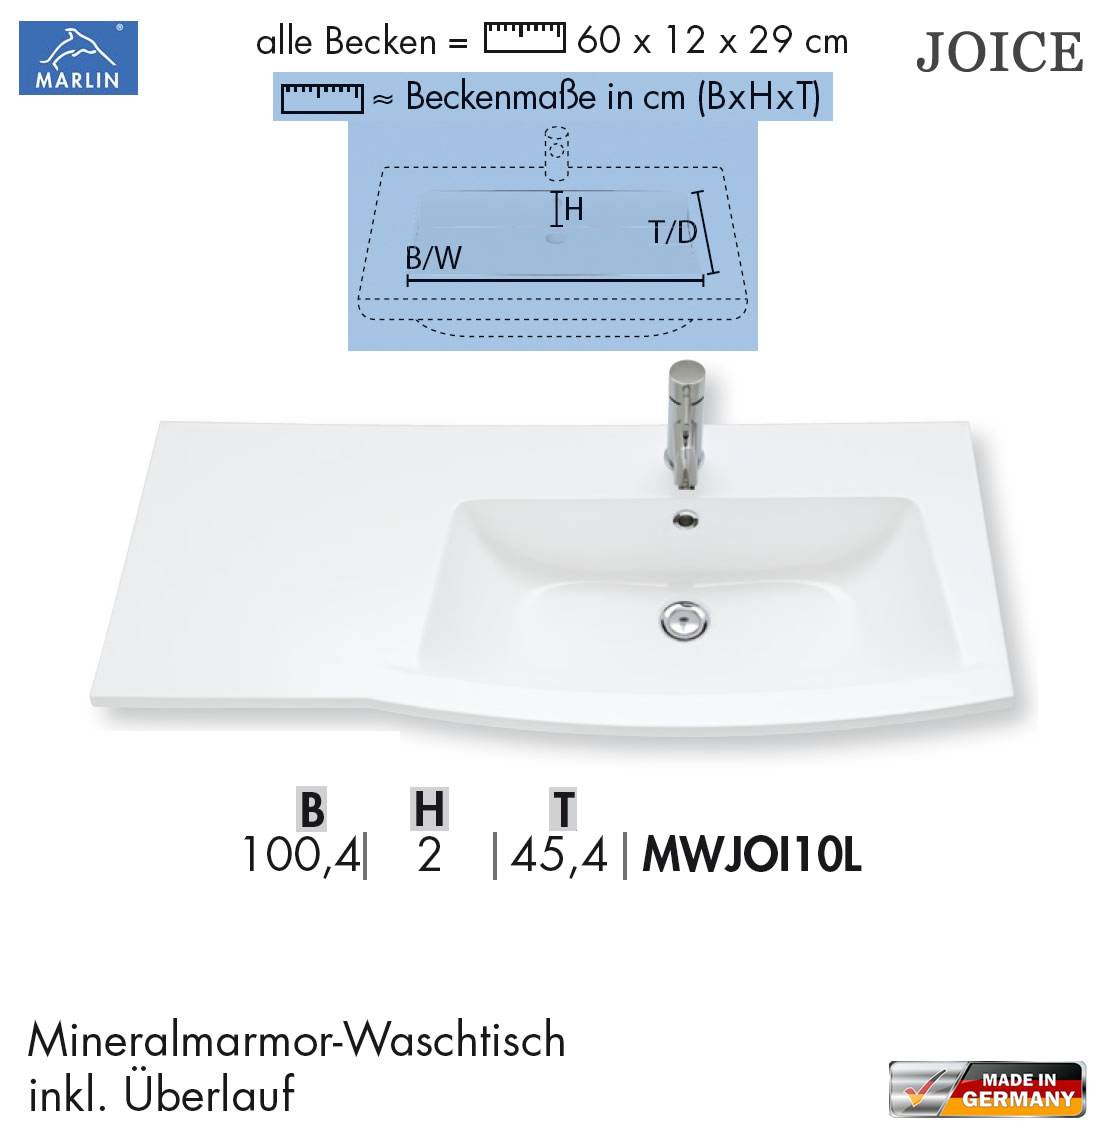 marlin joice waschtisch set 2 100 cm mit waschtisch mineralmarmor rahmenoptik led optional. Black Bedroom Furniture Sets. Home Design Ideas